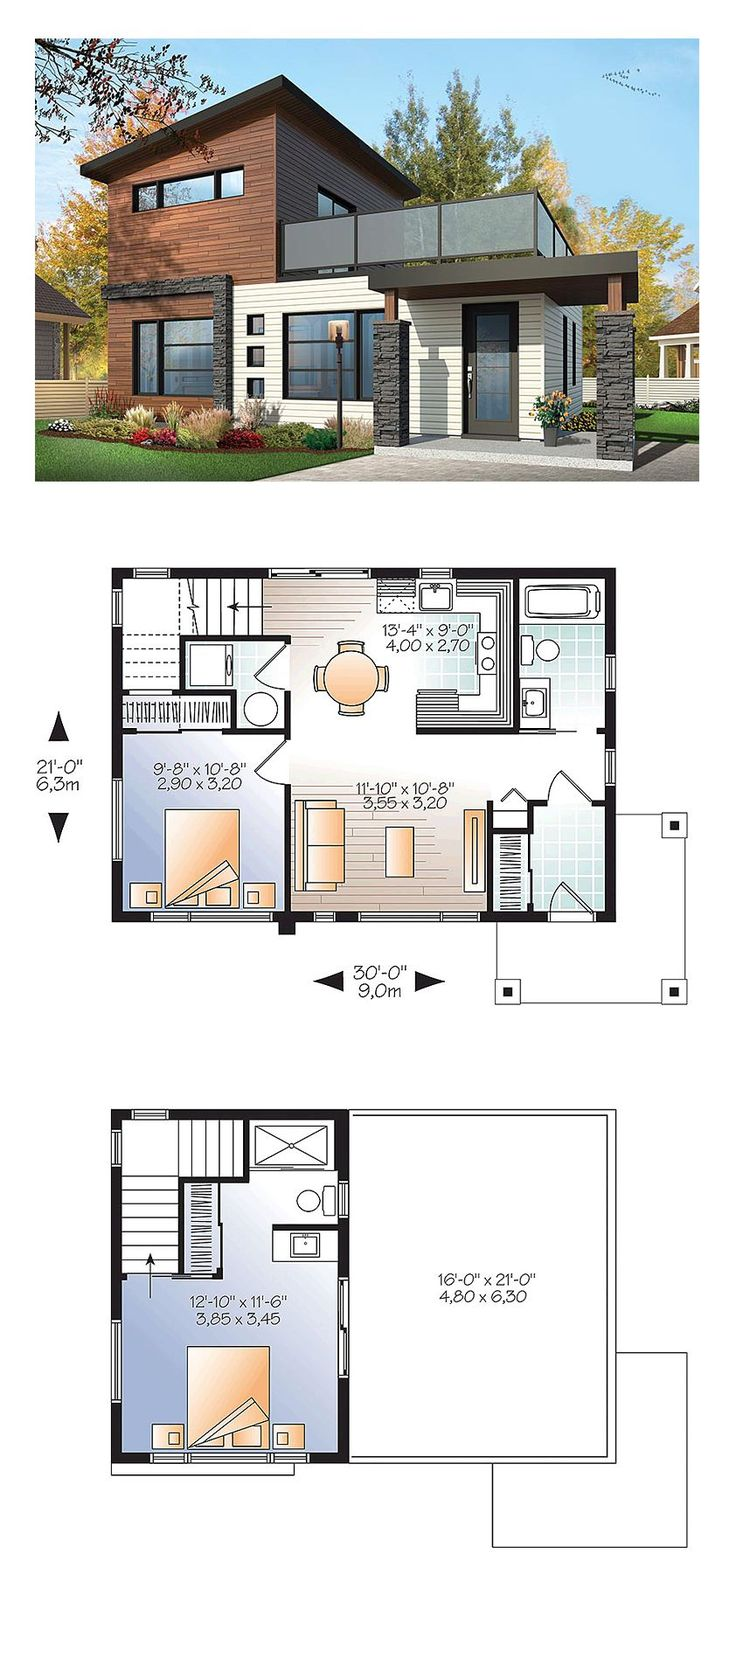 25 best ideas about modern house plans on pinterest Rest house plan